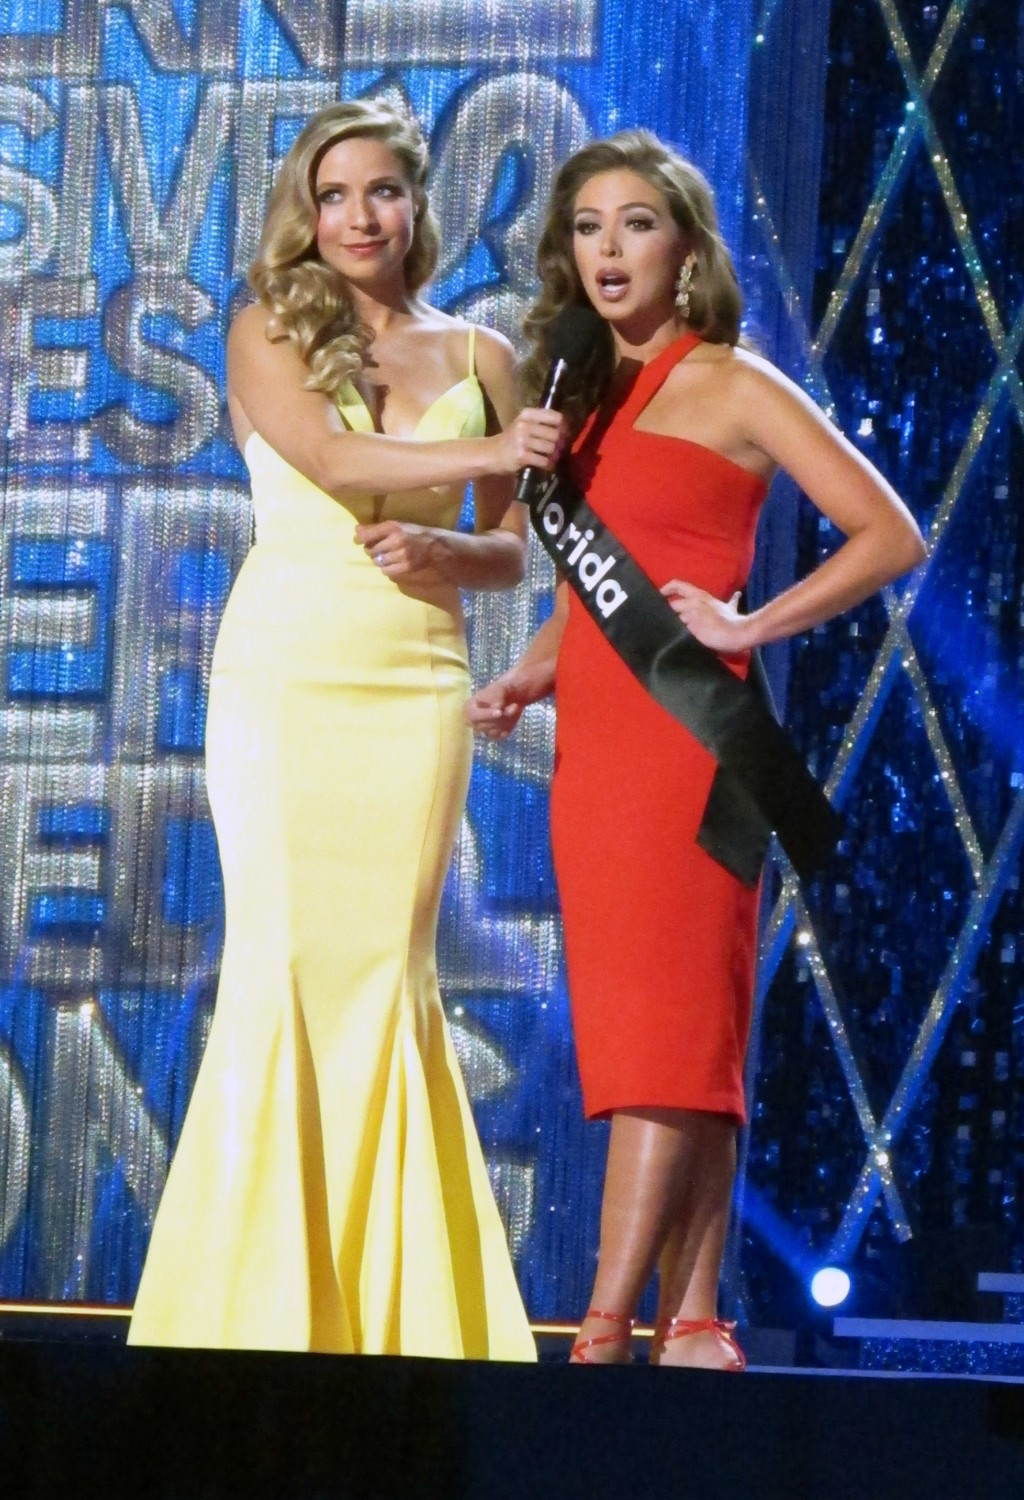 Miss America 2015 Kira Kazantsev, left, conducts an onstage interview with Miss Florida Taylor Tyson during the second night of preliminary competitio...